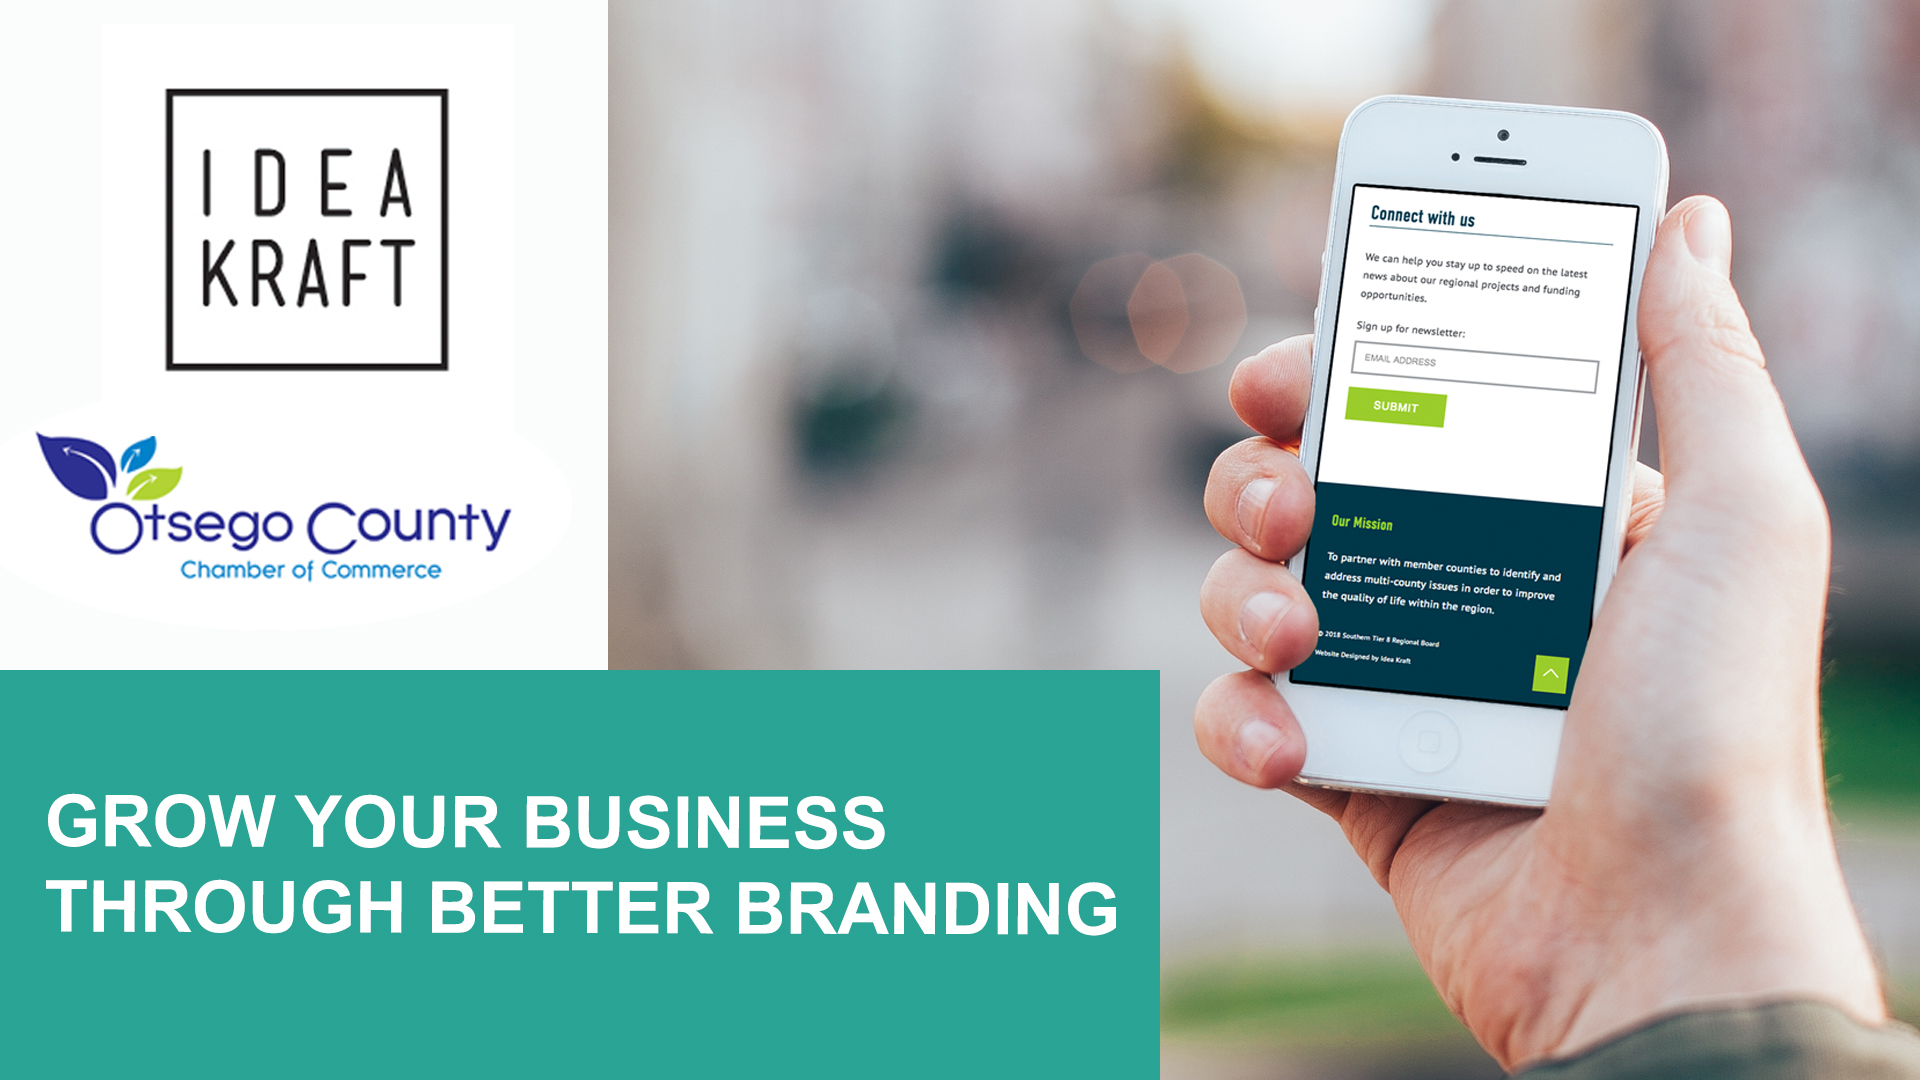 [Enews] FREE WORKSHOP Grow your business through better branding